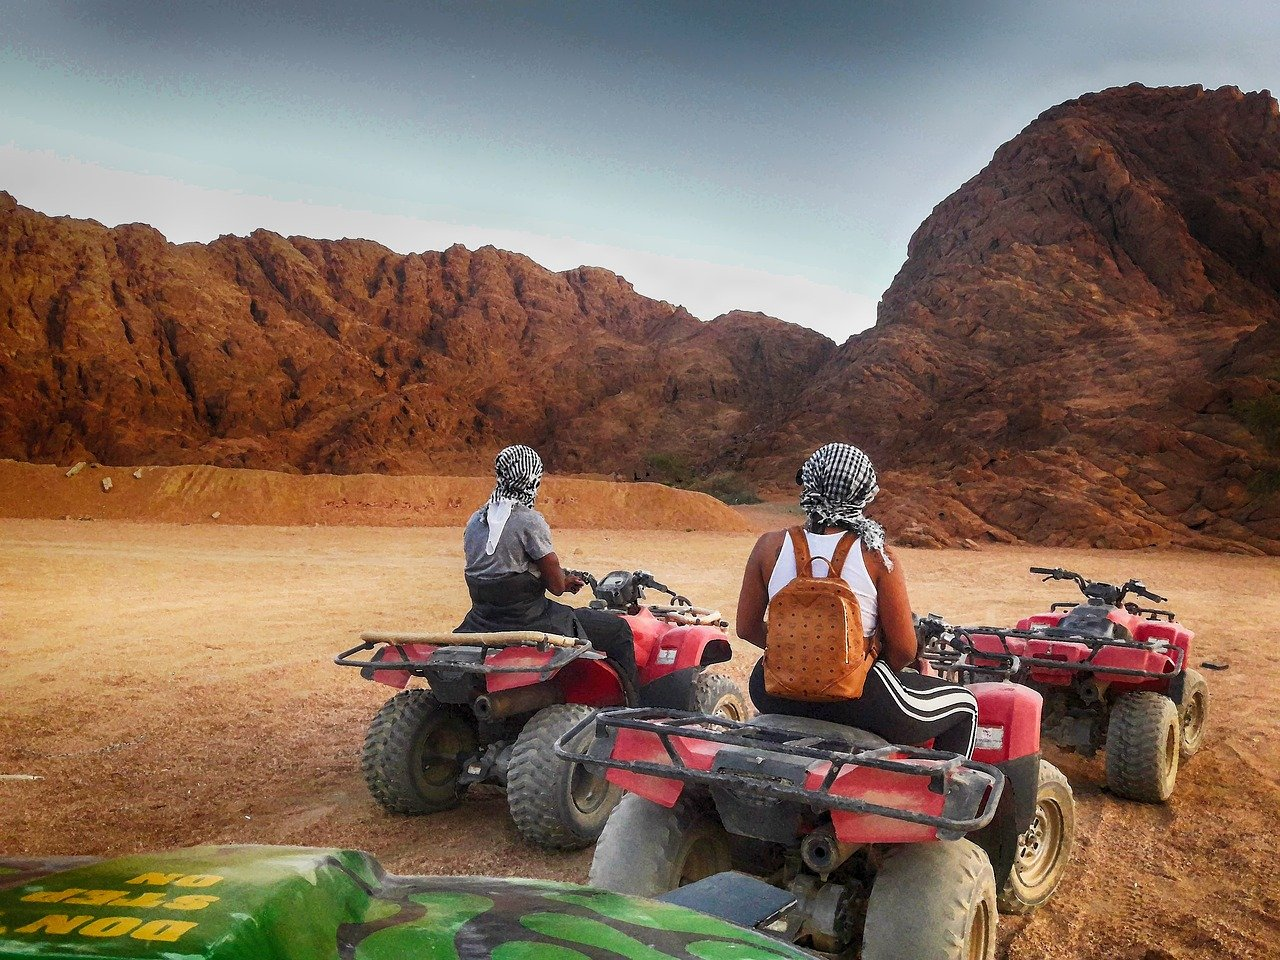 The Best ATVs In 2020 for Sports And Utility